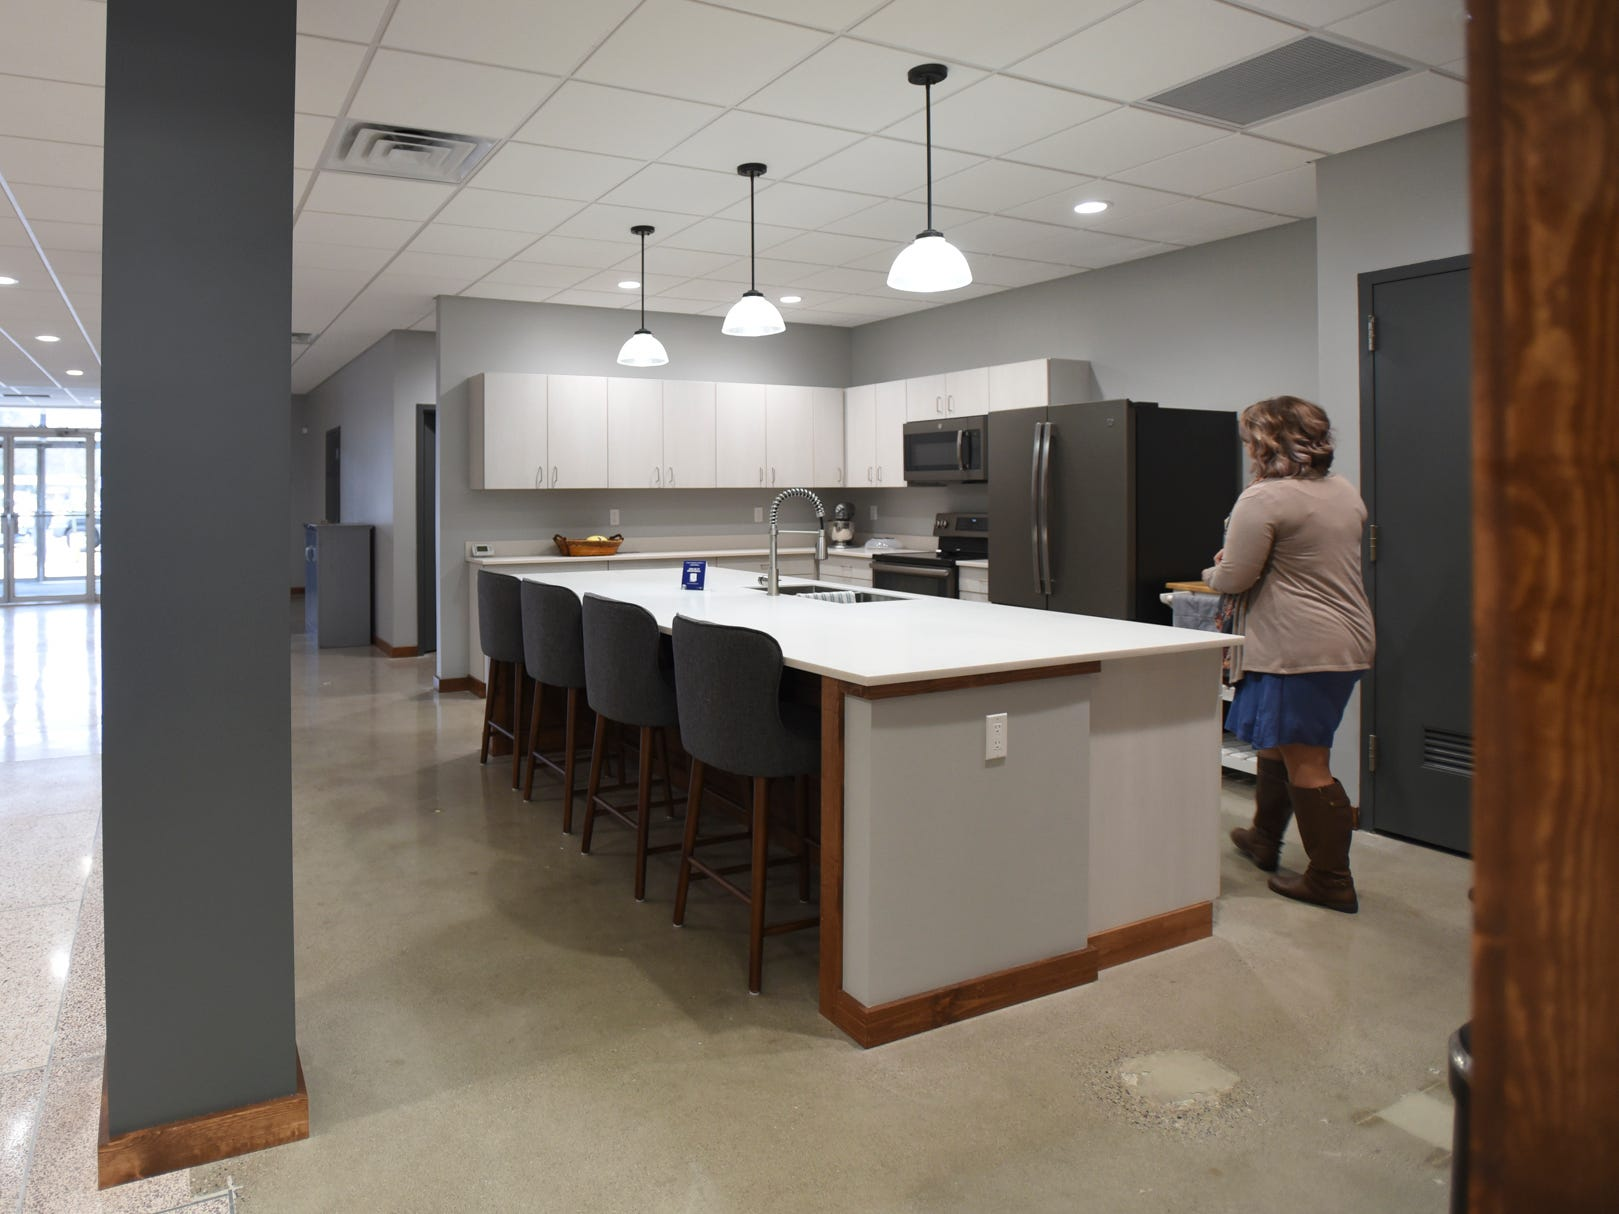 The kitchen at the offices of Doolittle & Associates - An Ameriprise Financial Services, Inc. practice at 122 S. Cochran Ave. in downtown Charlotte on Monday, Nov. 12, 2018.